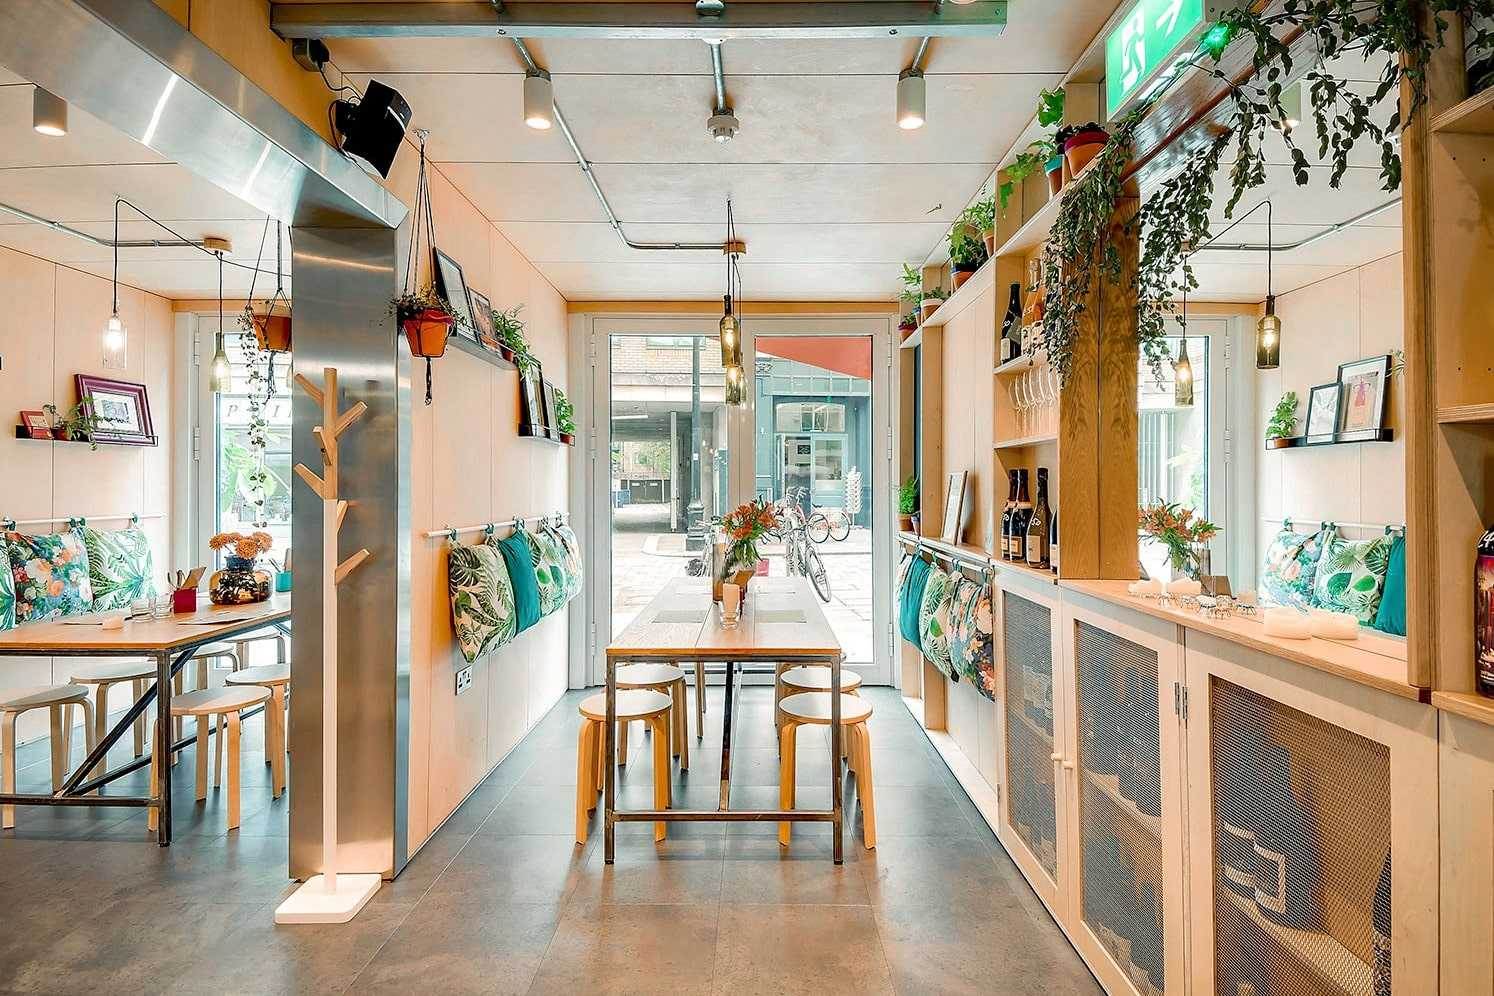 stow-away-eco-aparthotel-filled-with-plants